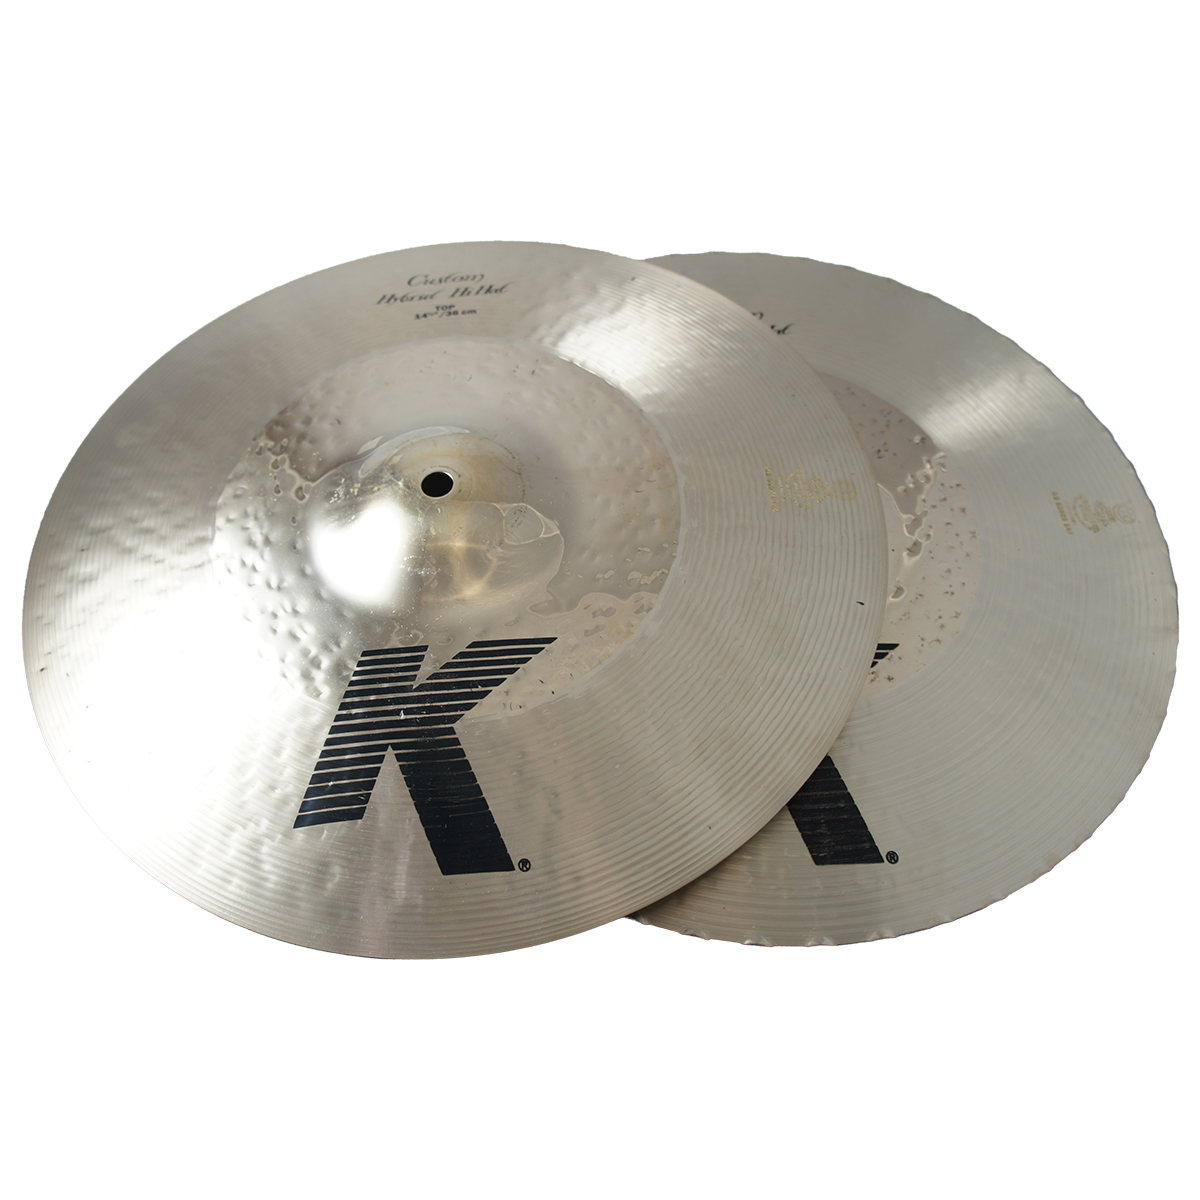 """Zildjian 14 1/4"""" K Custom Series Hybrid Hi Hat Pair Drumset Cast Bronze Cymbals with Solid Chick Sound and Small Bell Size K1224"""